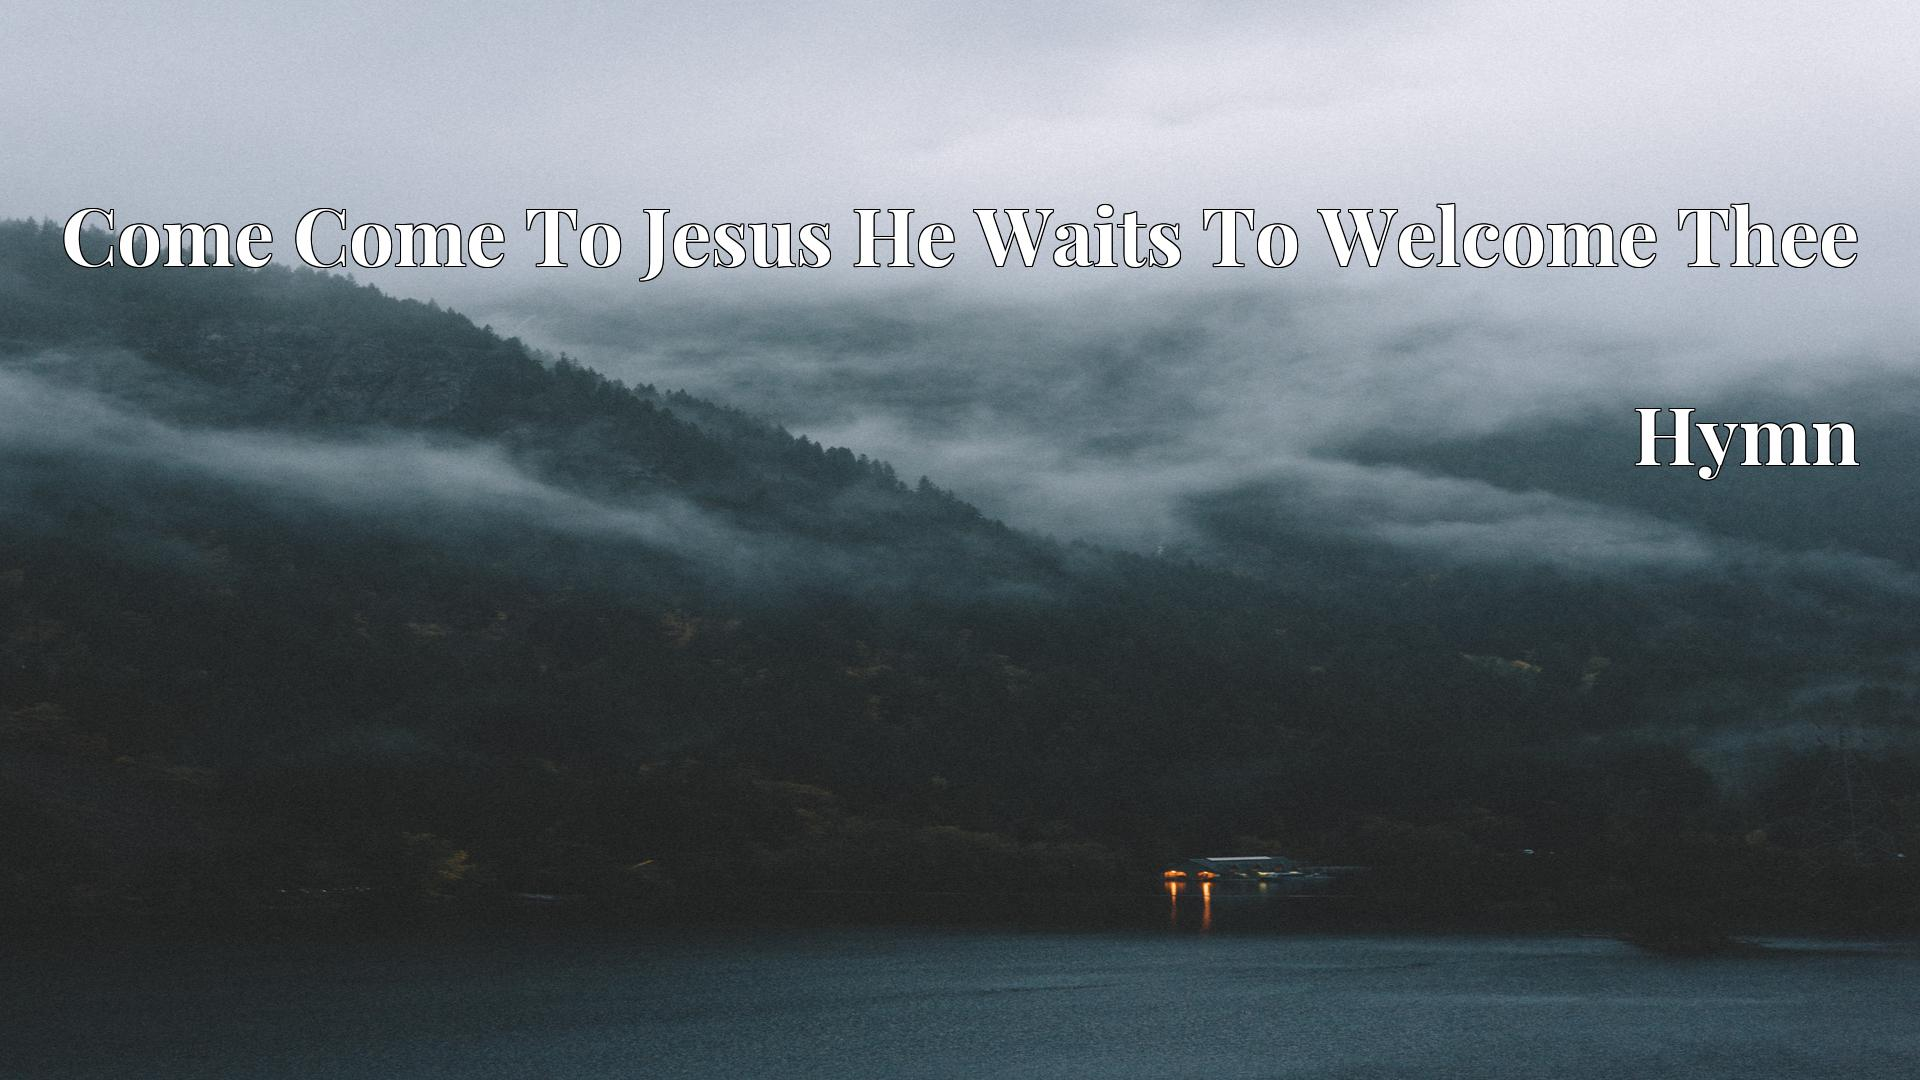 Come Come To Jesus He Waits To Welcome Thee - Hymn